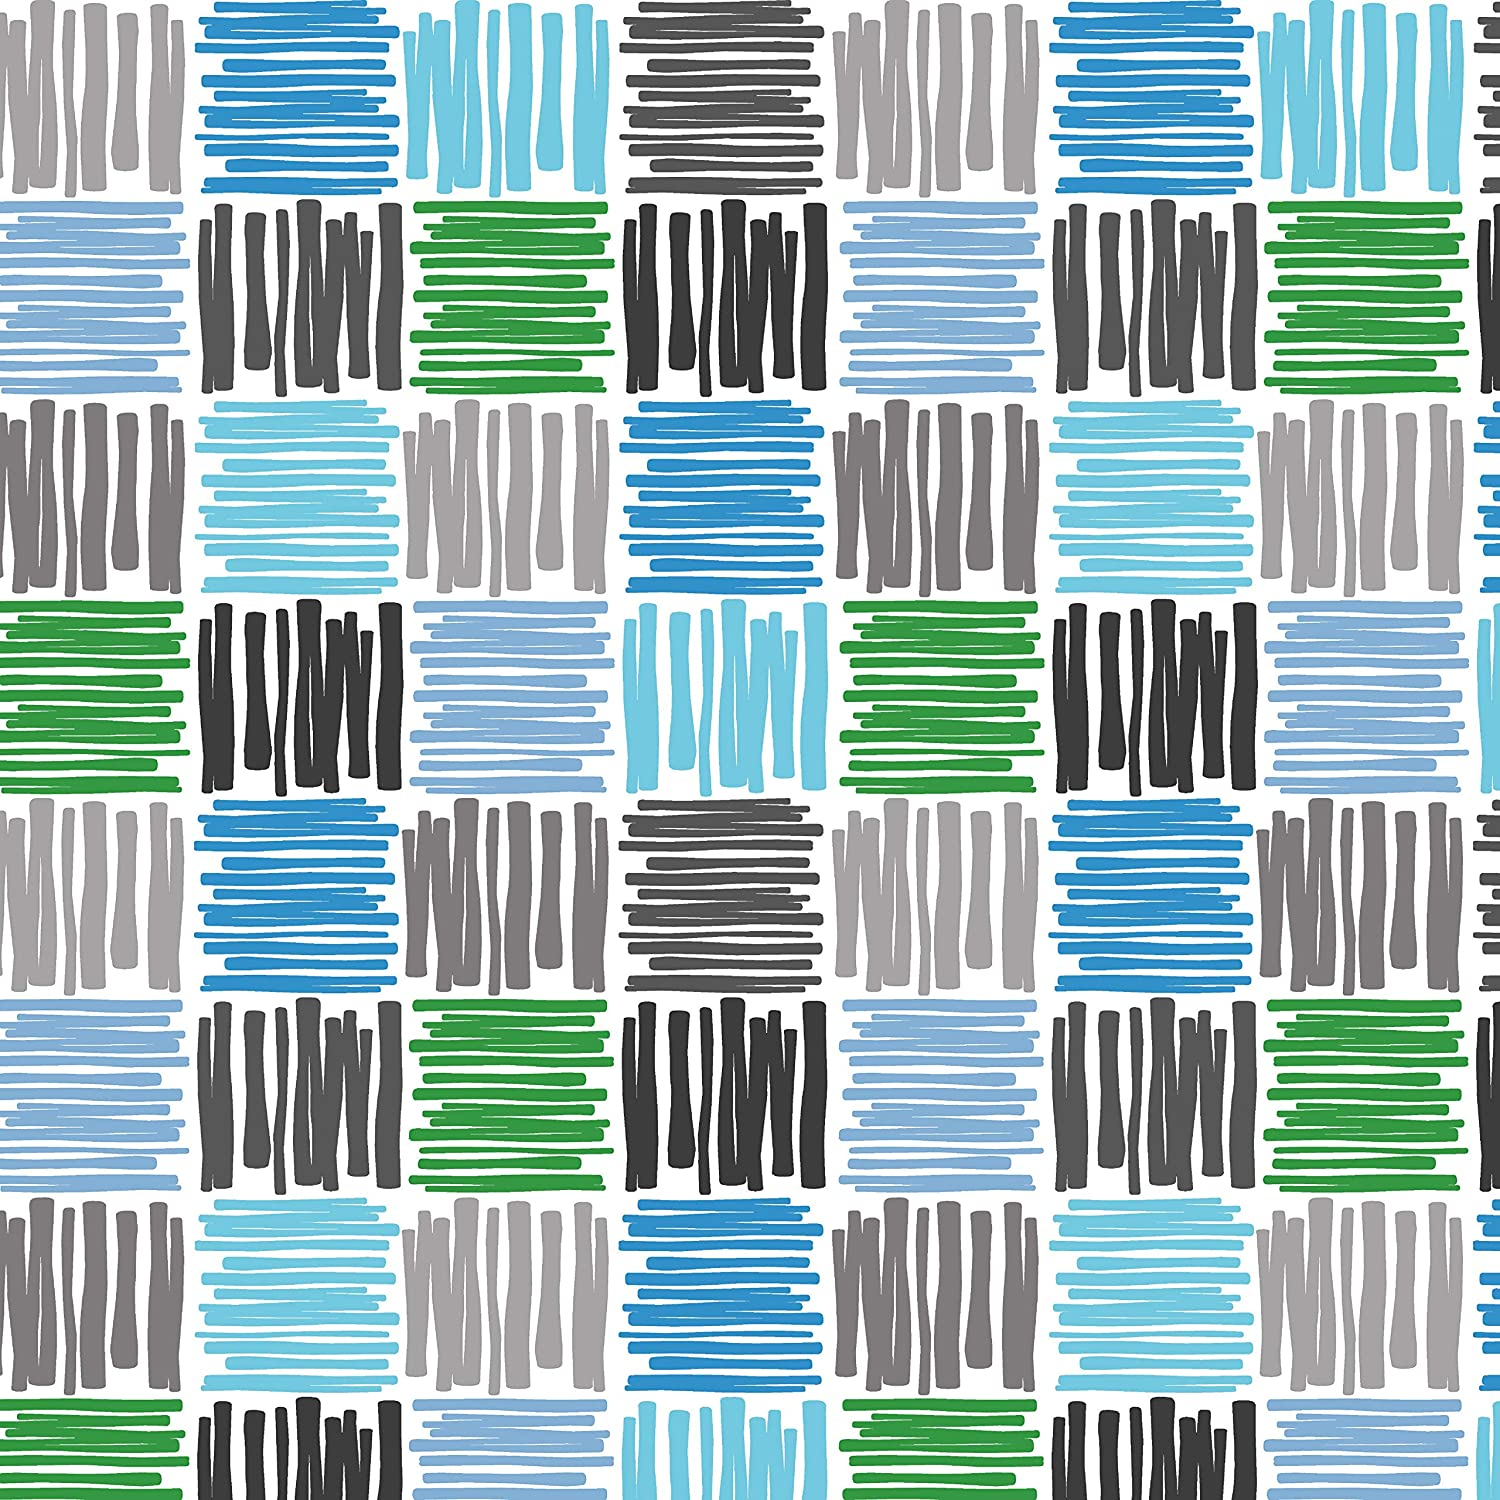 PVC Tablecloth Scribble Squares Blue 1.5 Metres Blue Sky Pastel Forest Green Grey Slate Charcoal Ecru White Novelty Kids Squiggle Patches Wipe Clean 150cm x 140cm Vinyl//Plastic Table Cloth